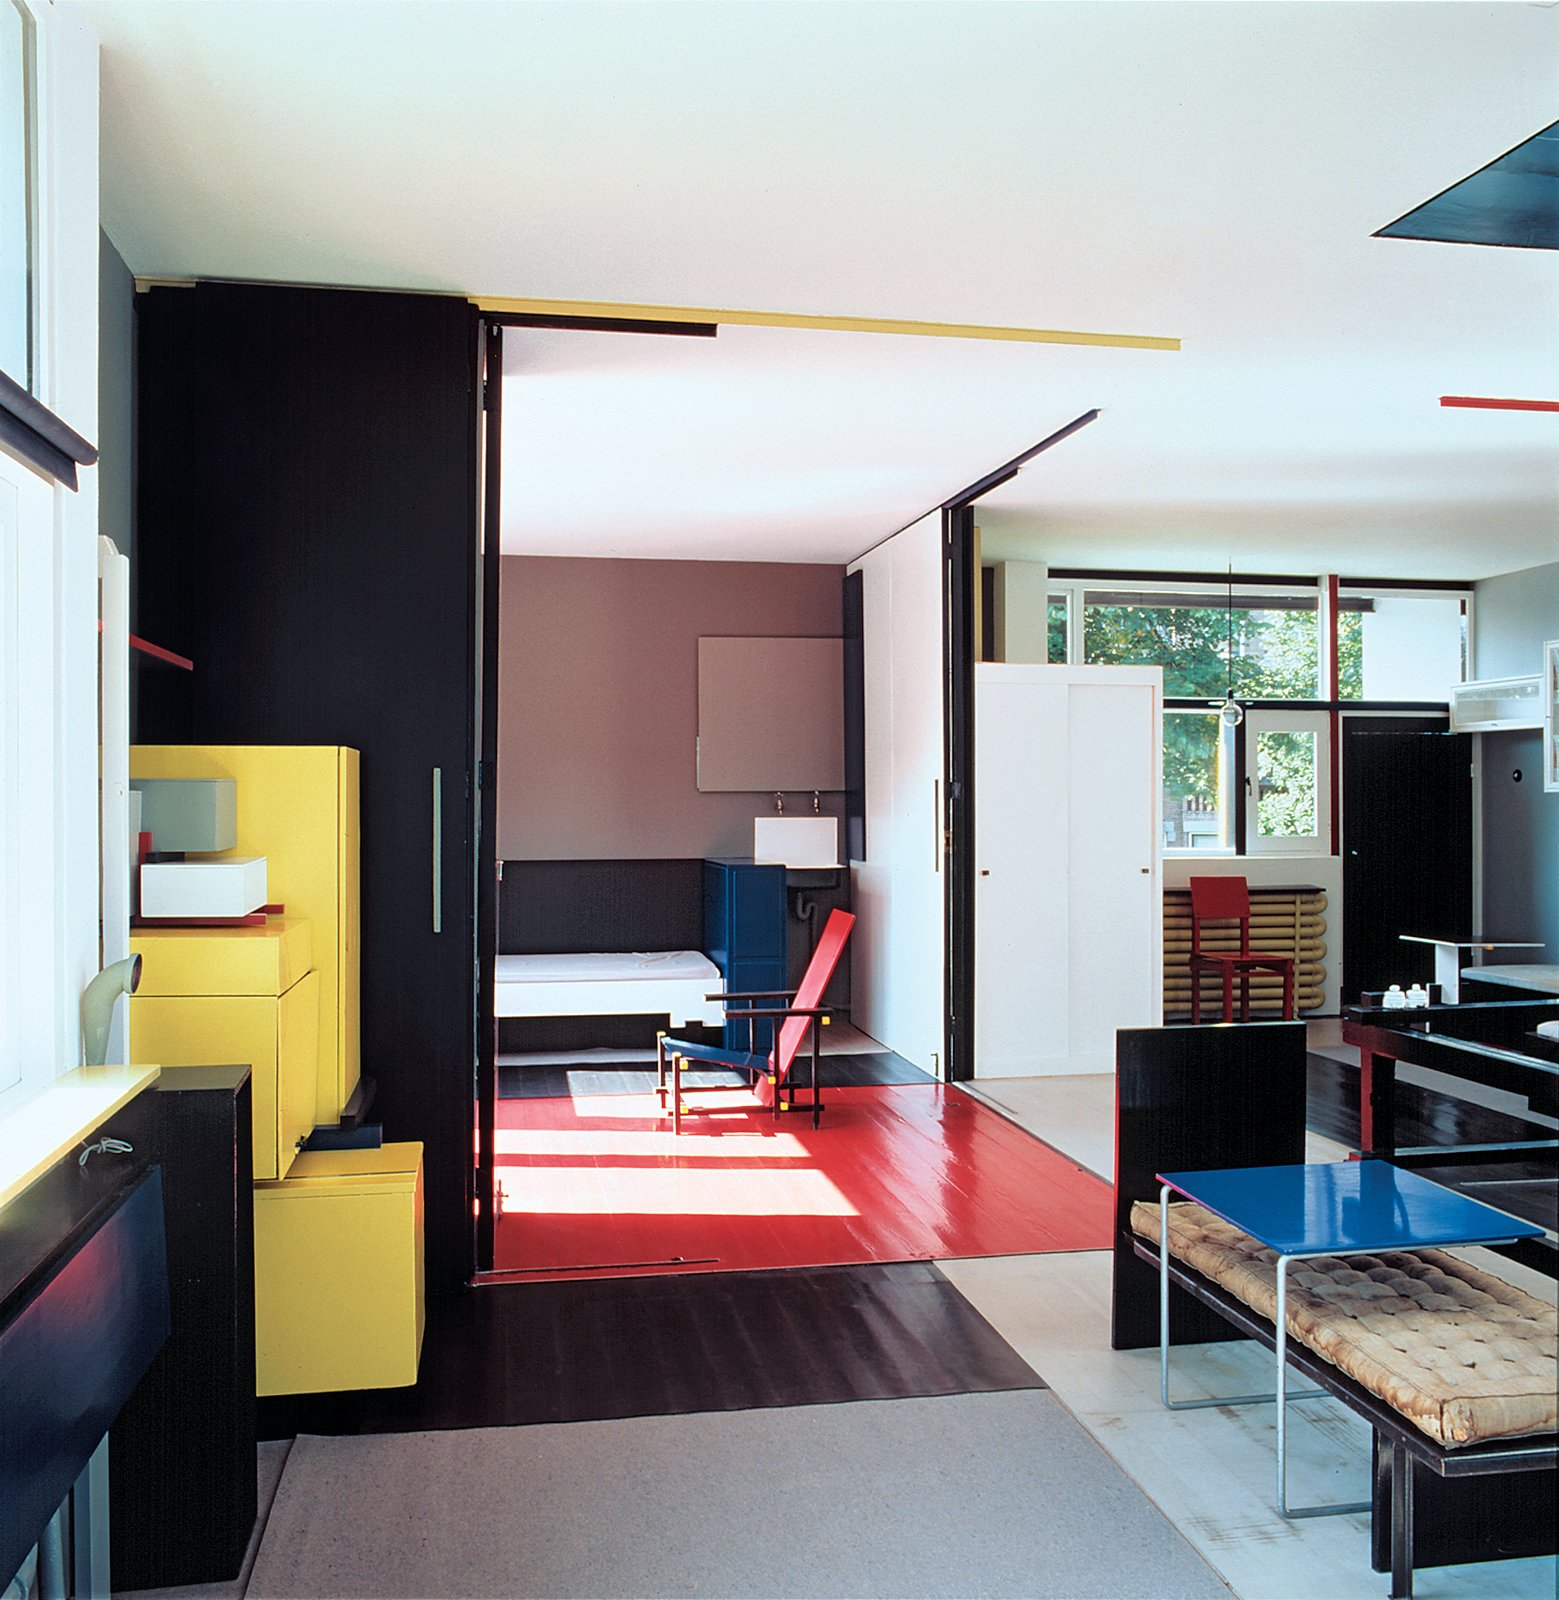 Color featured prominently in the Rietveld Schröder House, although Rietveld later banished it from his work. Mulder's restoration reinstated the yellow stacking cabinet on the left.  Living Rooms by Dwell from Et tu, Bertus?